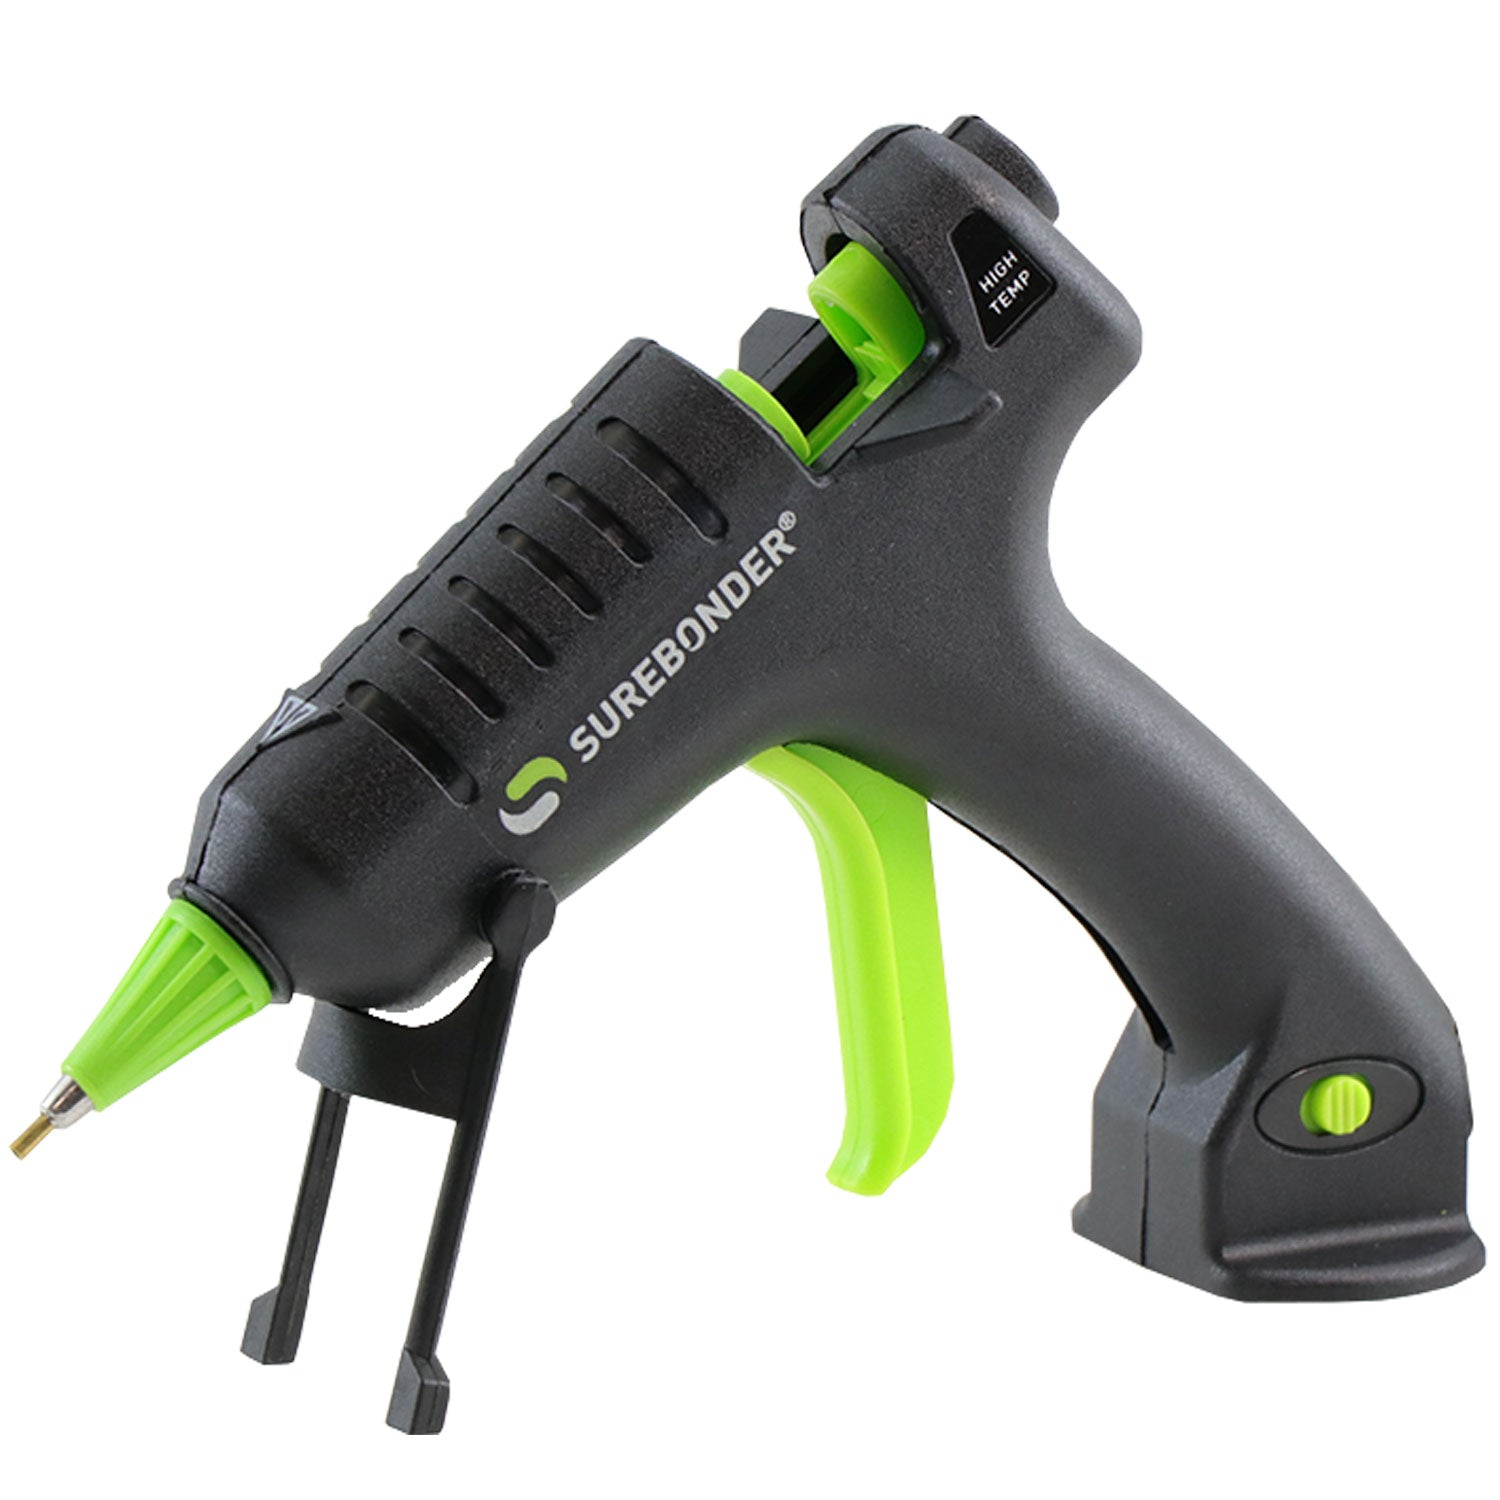 Surebonder H-195F Specialty Series 20 Watt Mini Size High Temperature Detail Hot Glue Gun